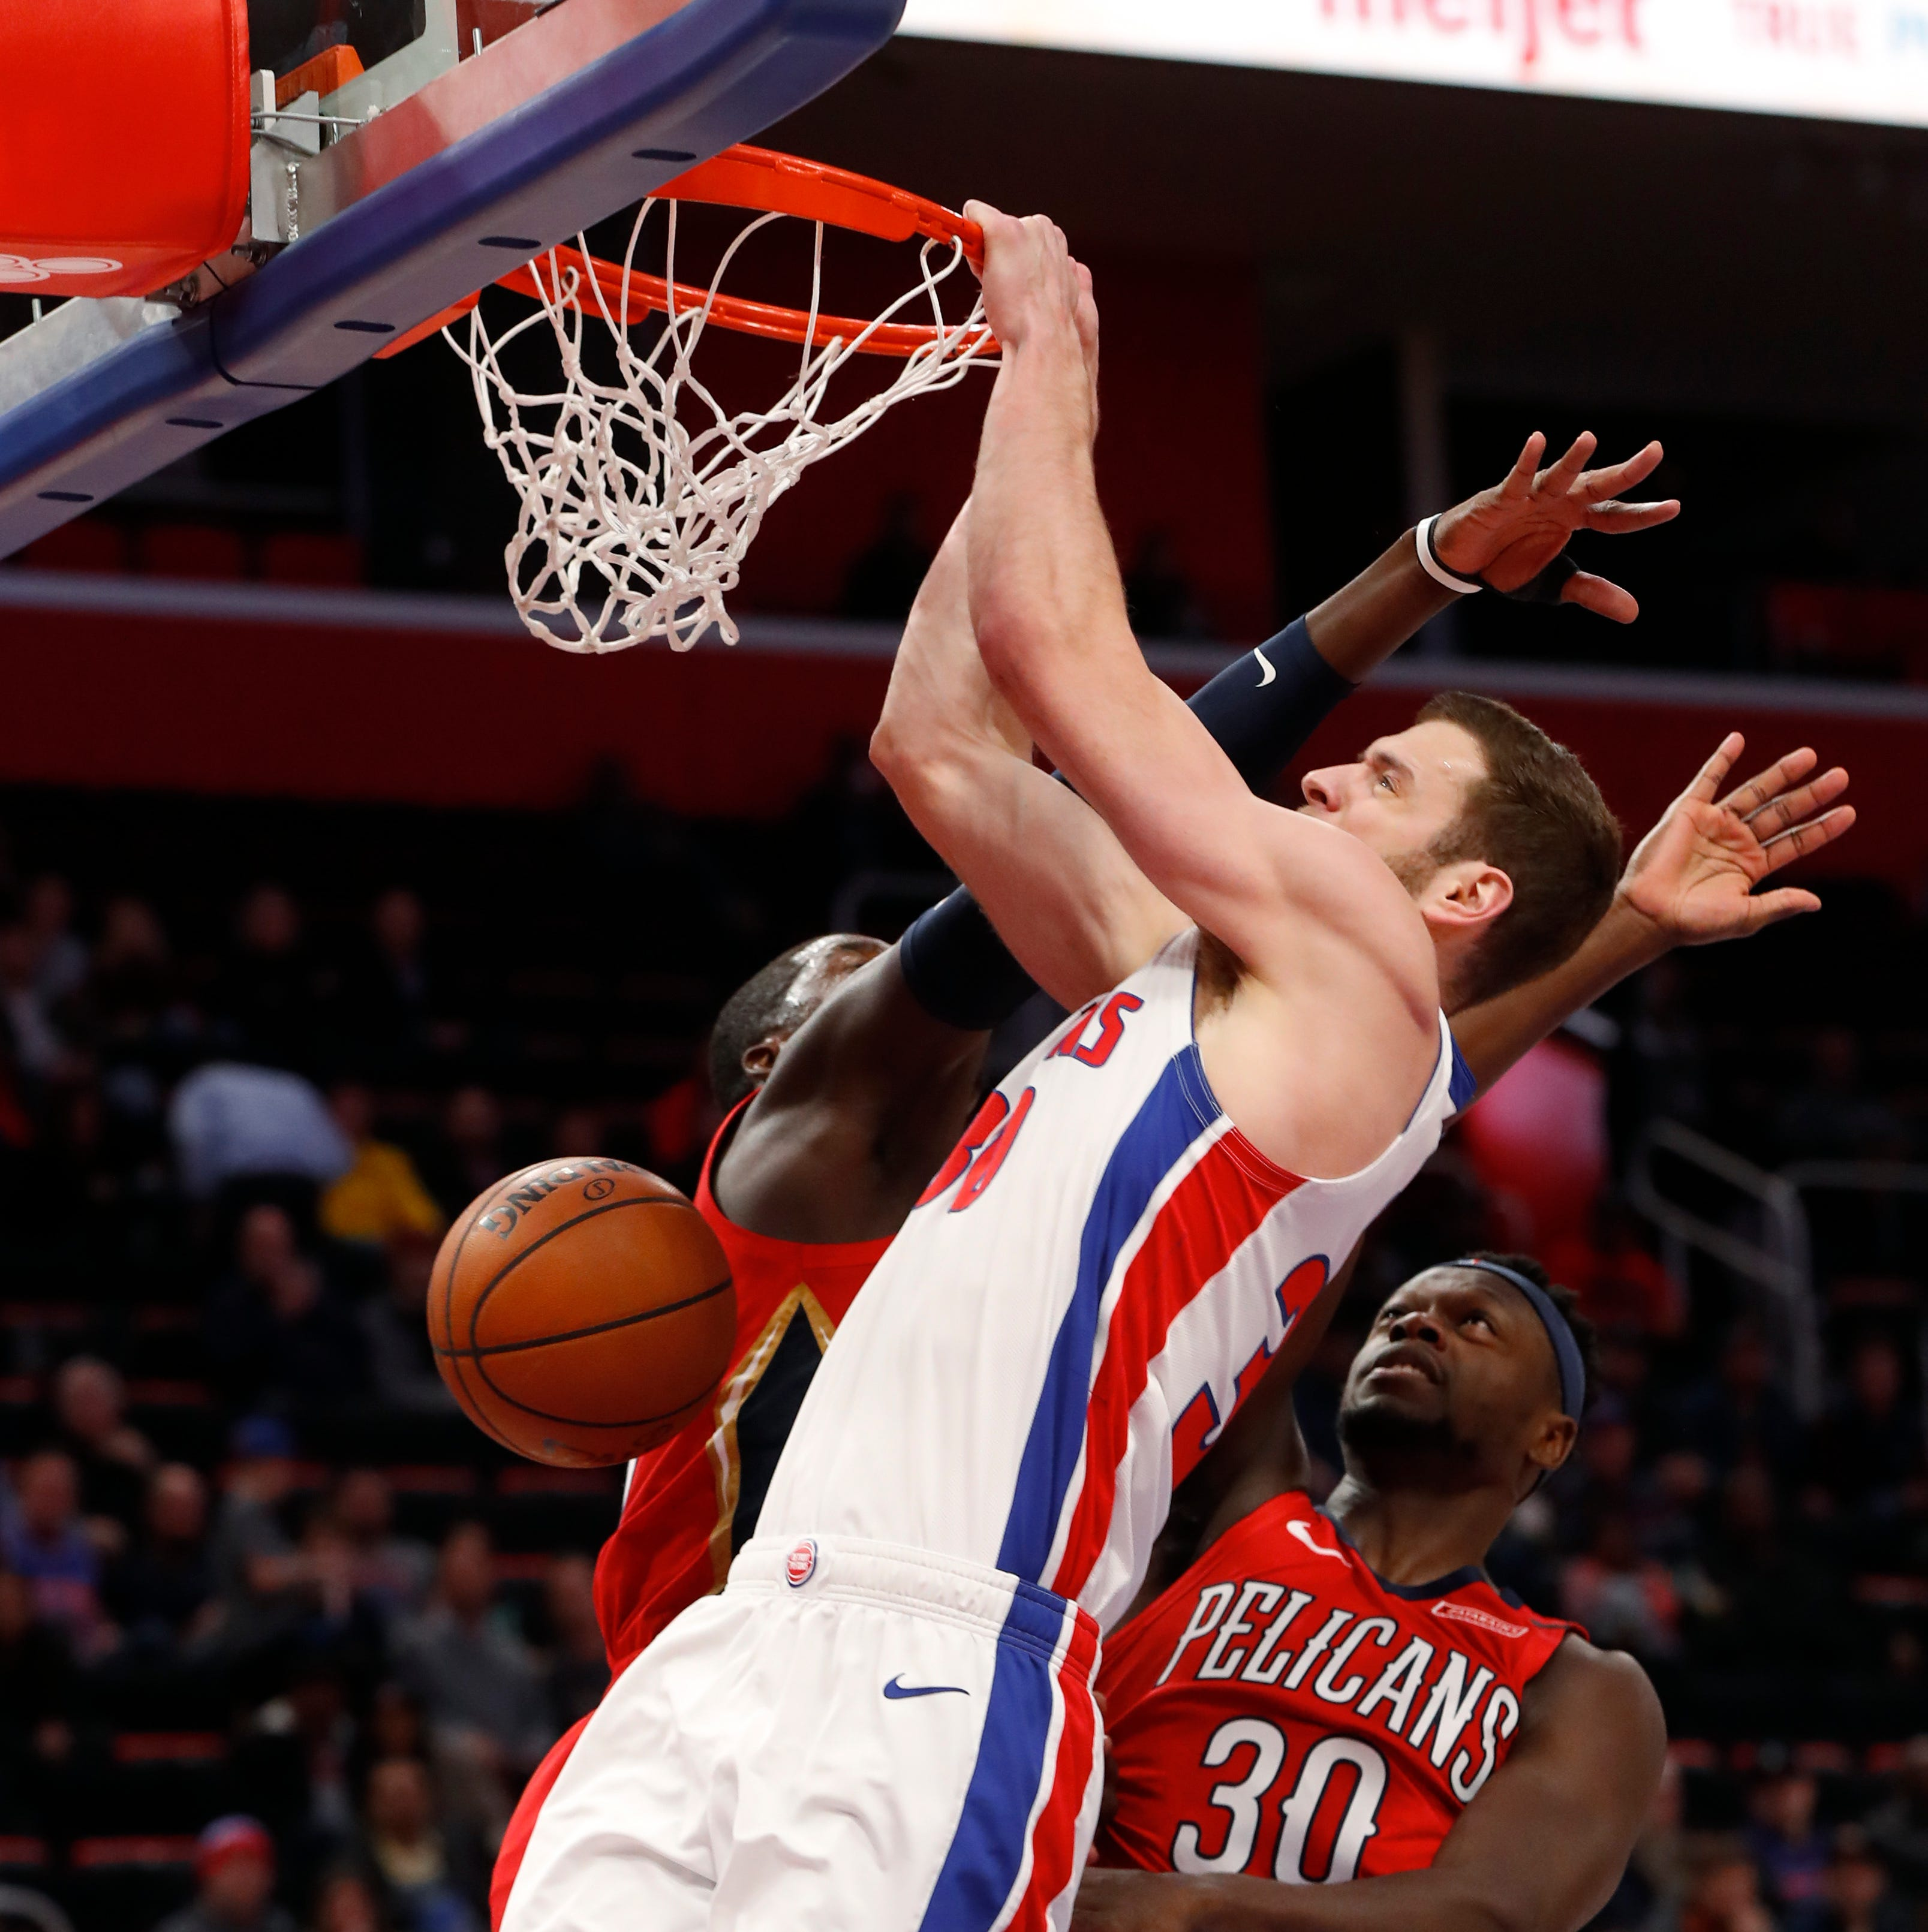 Beard: Amid Pistons' tailspin, the road offers no comfort